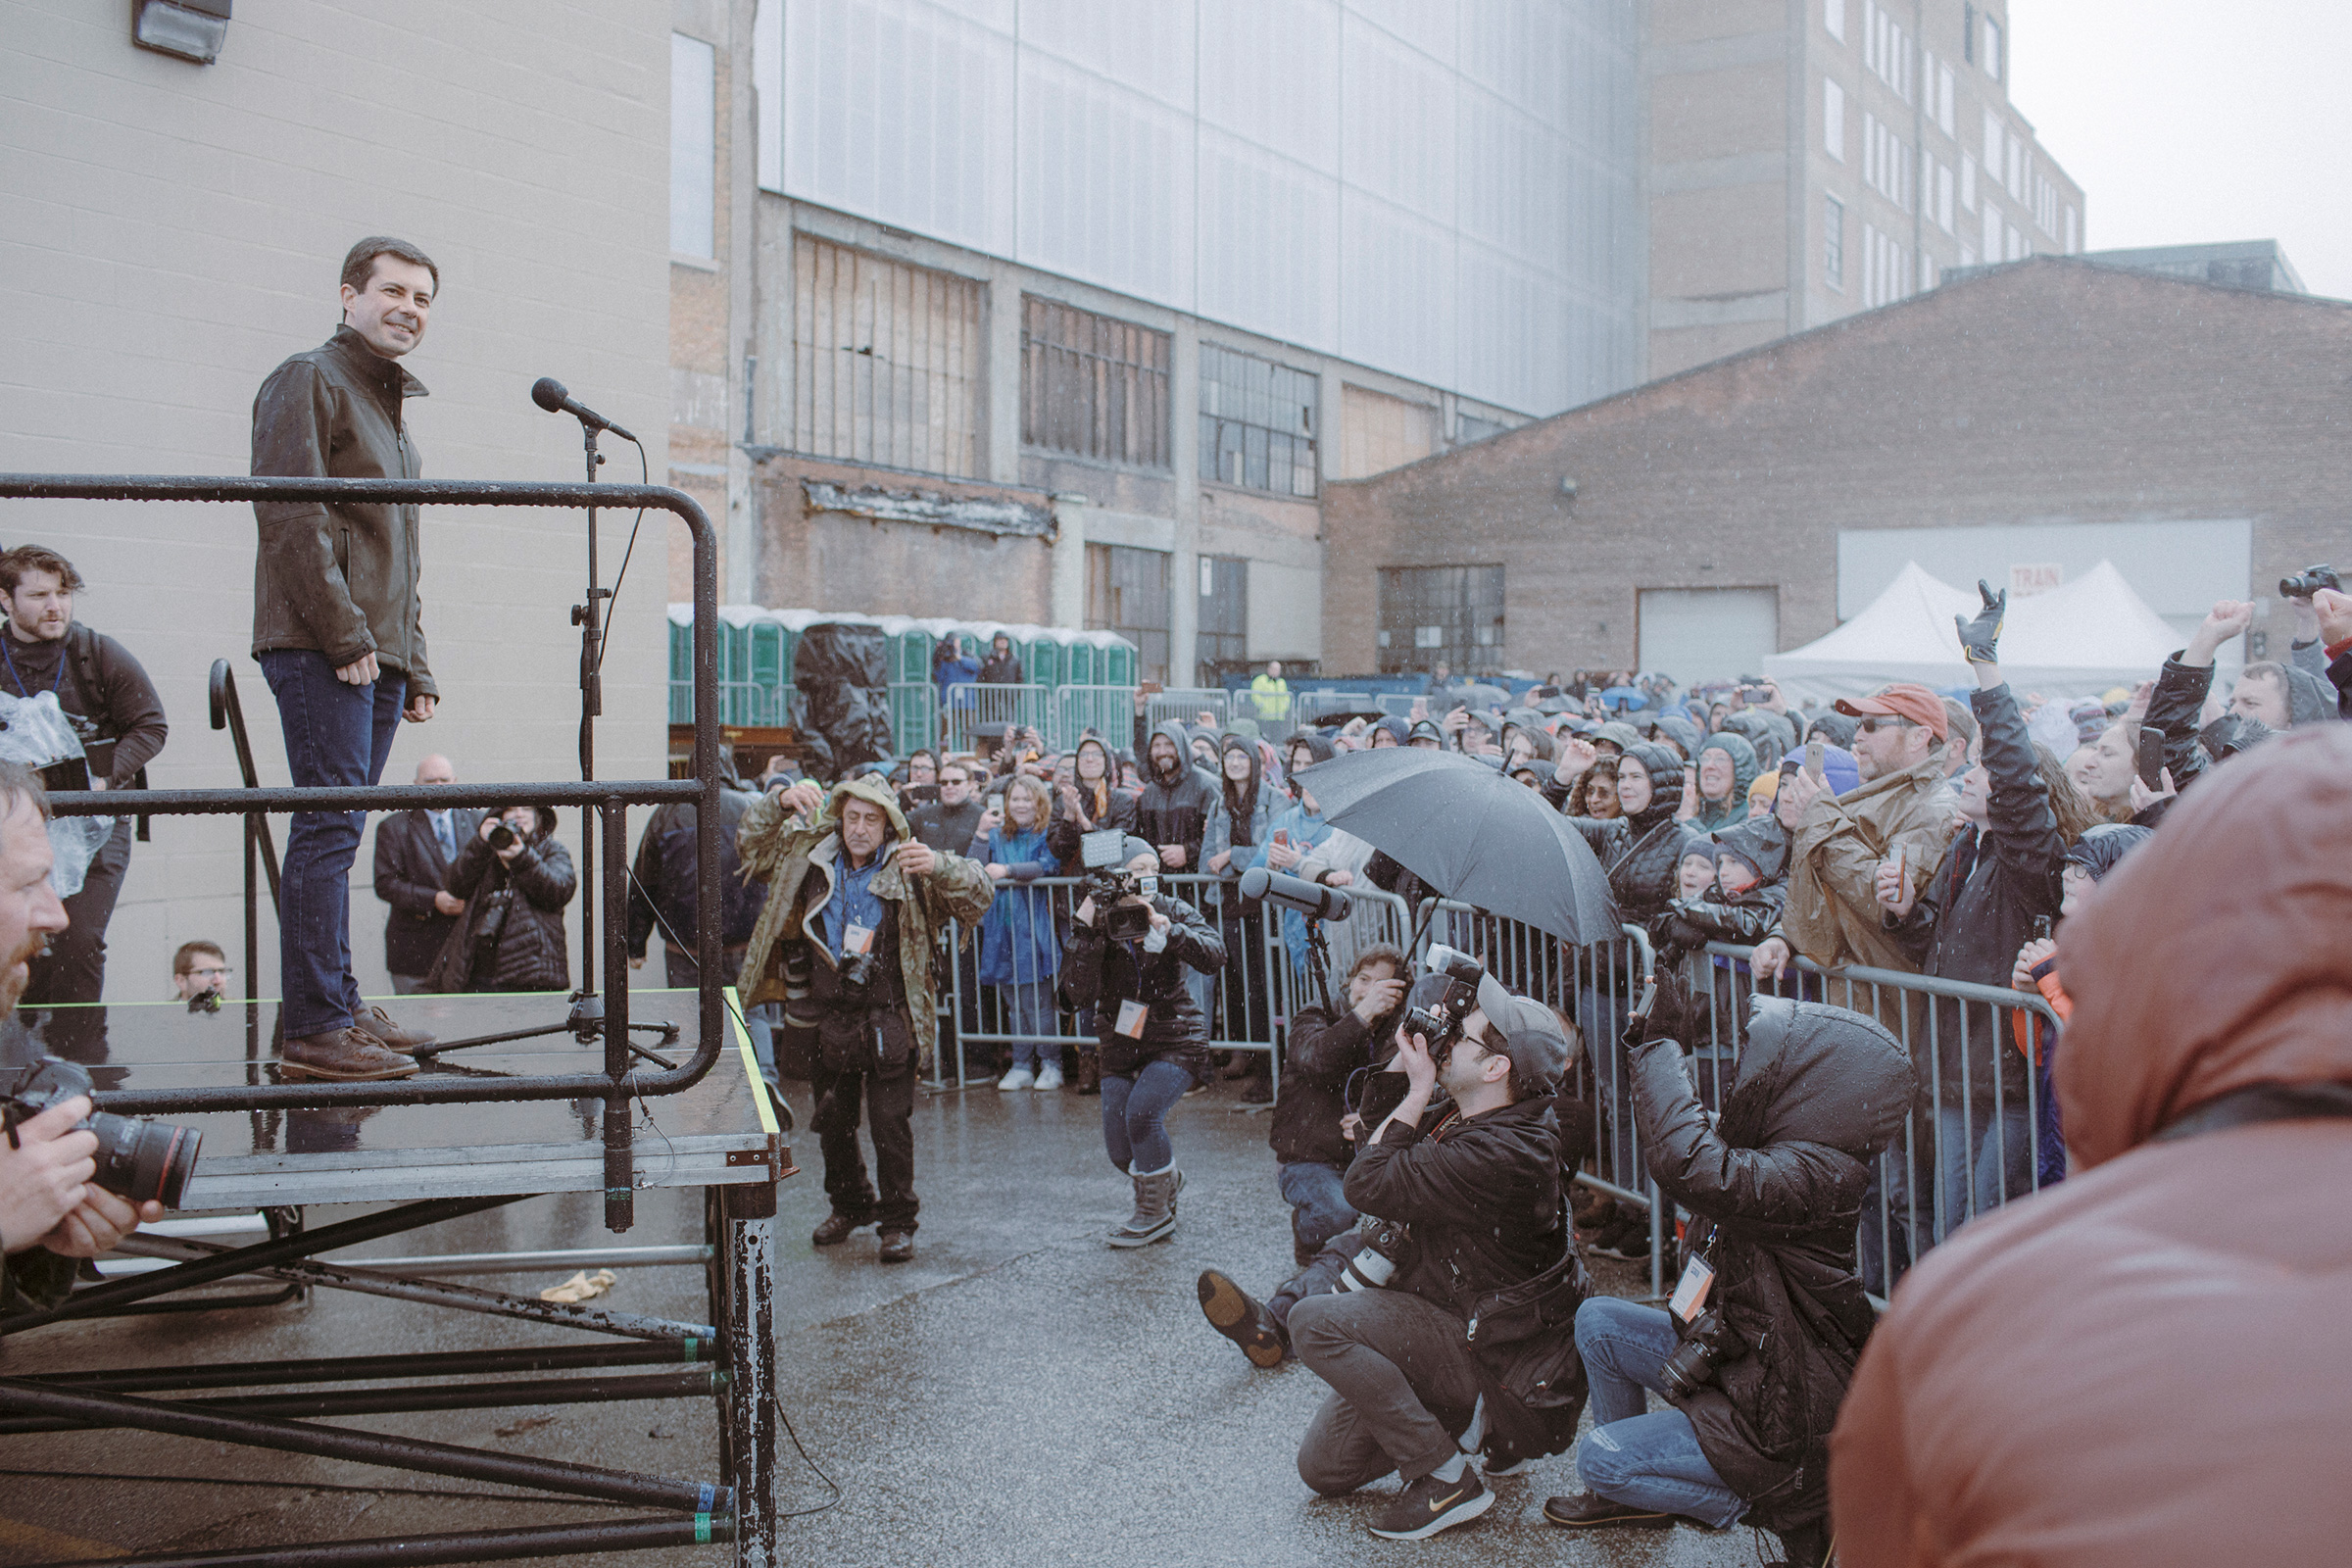 Mayor Pete Buttigieg greets the overflow crowd of supporters waiting in the rain on April 14 outside his presidential campaign announcement in South Bend.